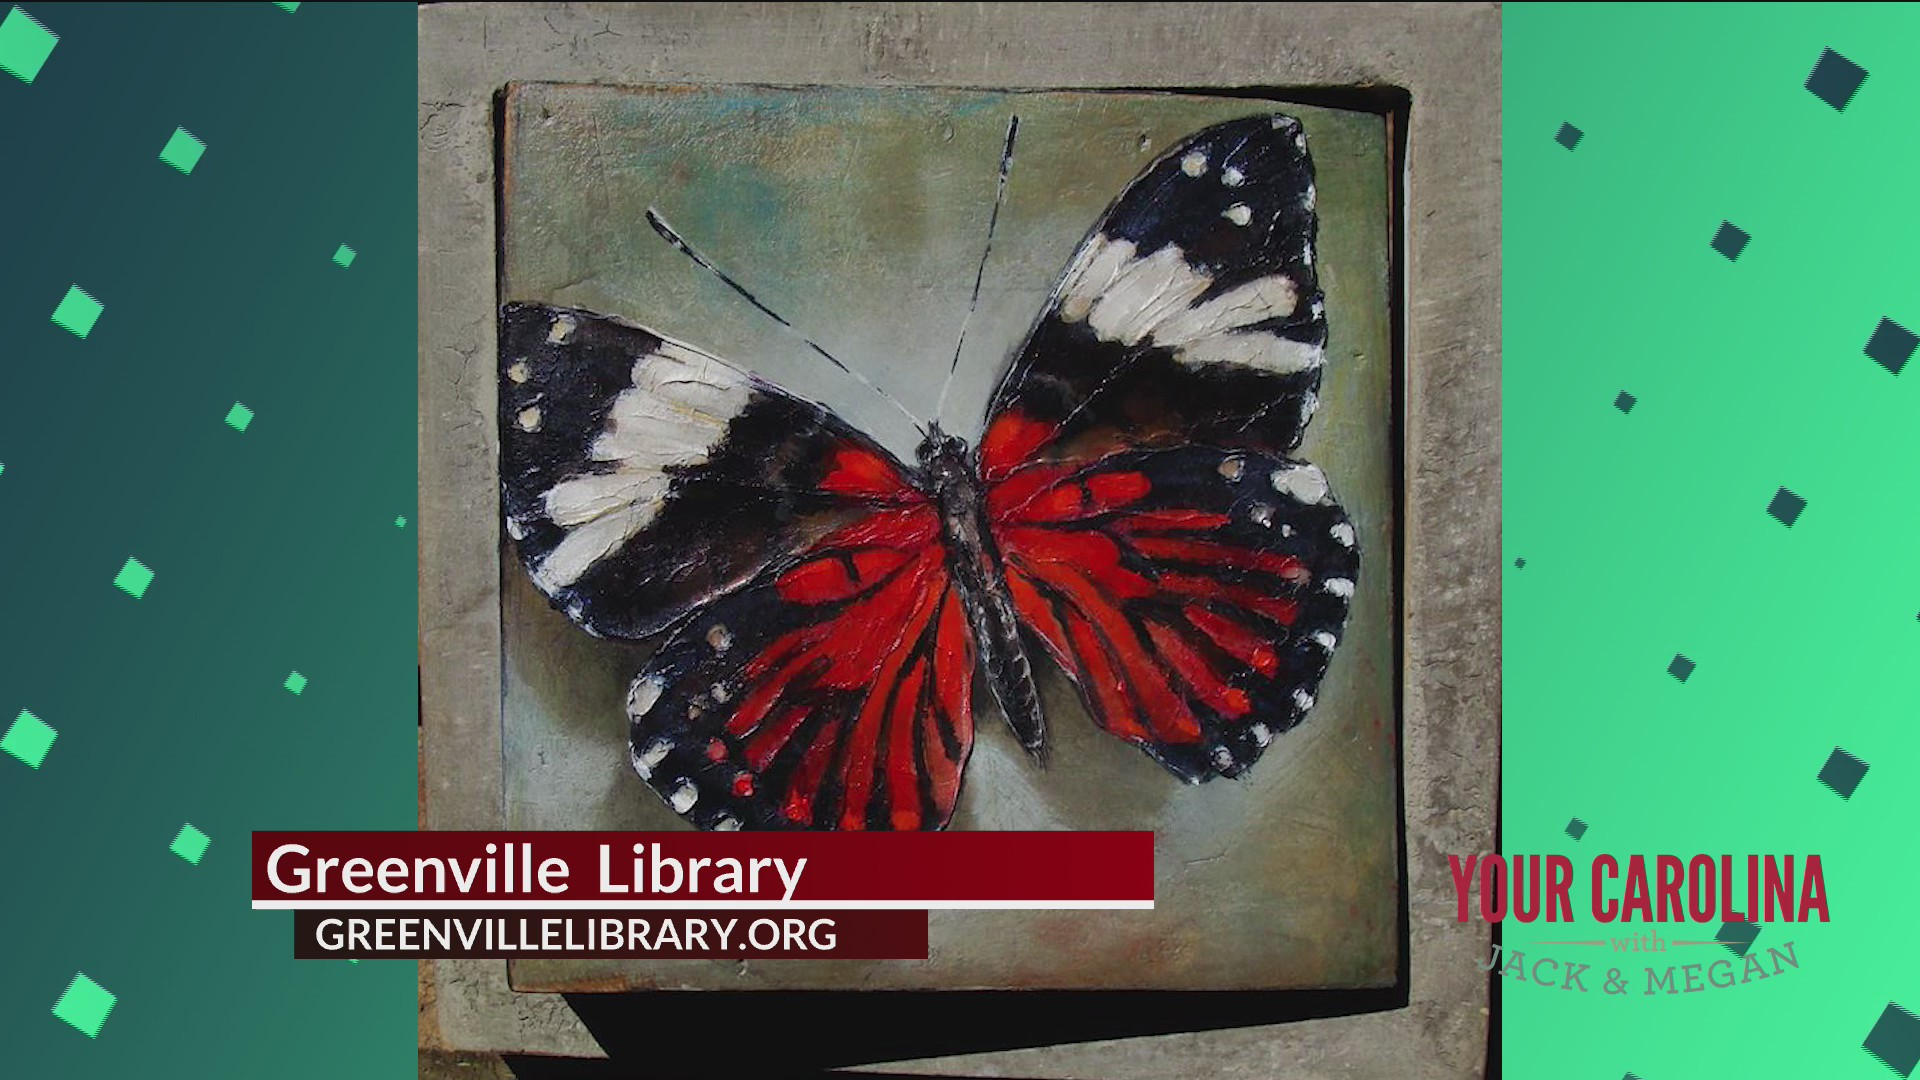 Happening at the Greenville Library